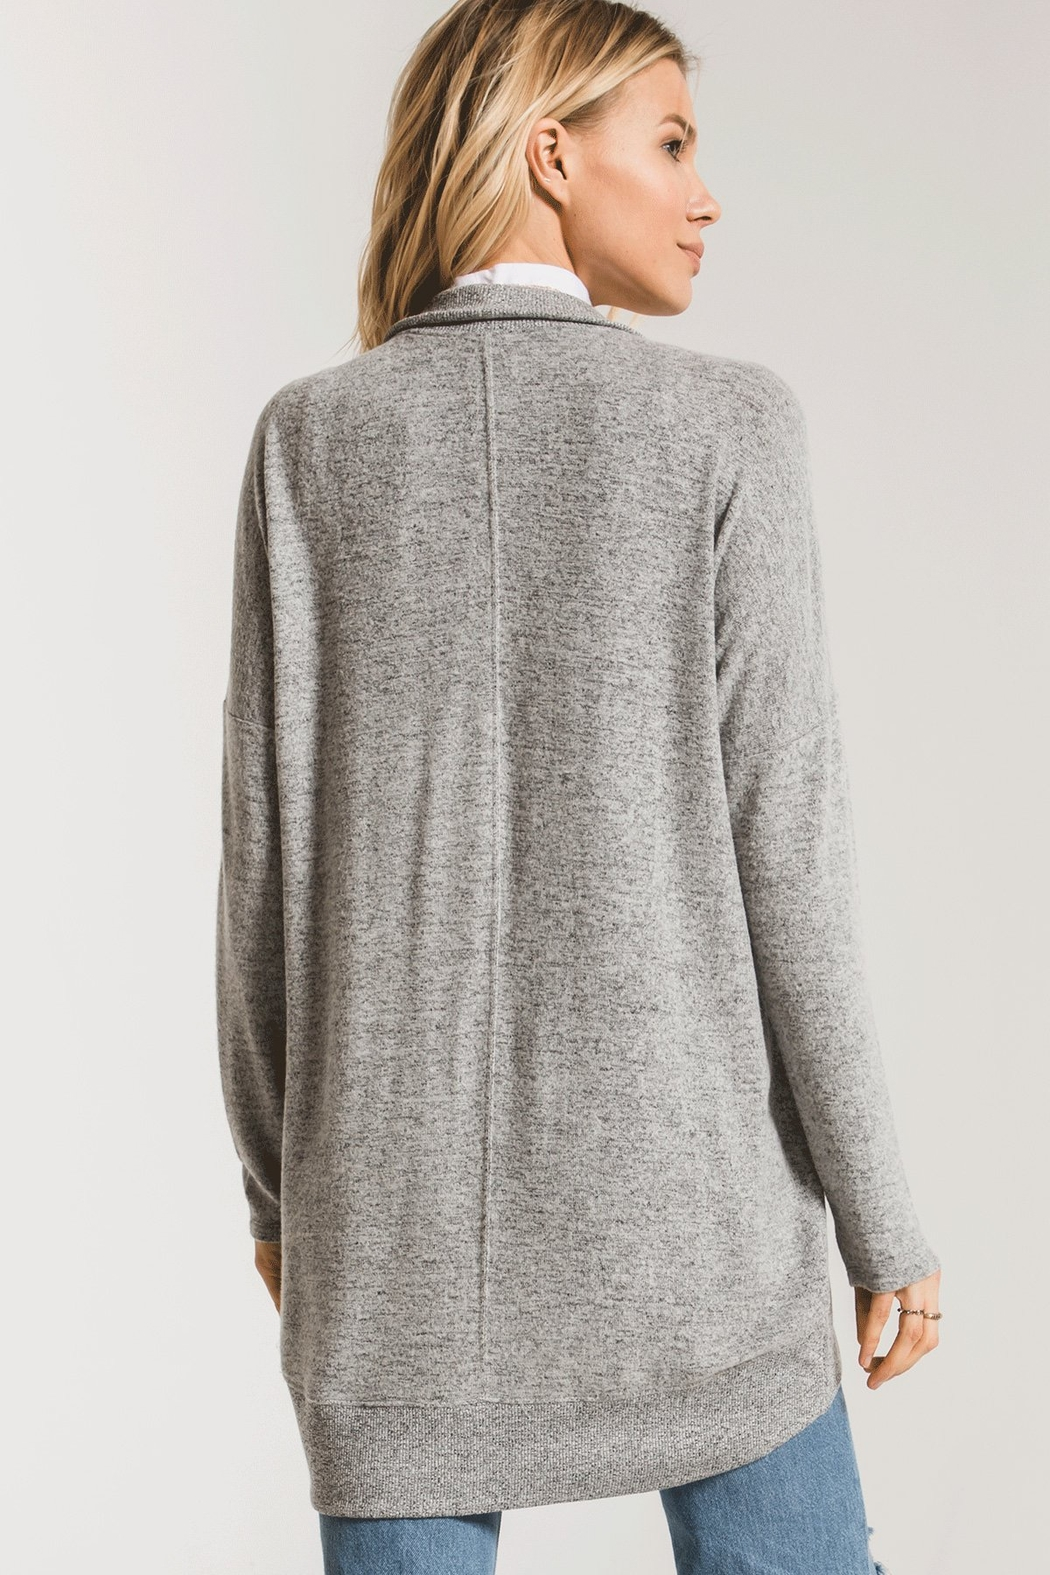 z supply Marled Sweater Knit Coccoon Cardigan - Front Full Image